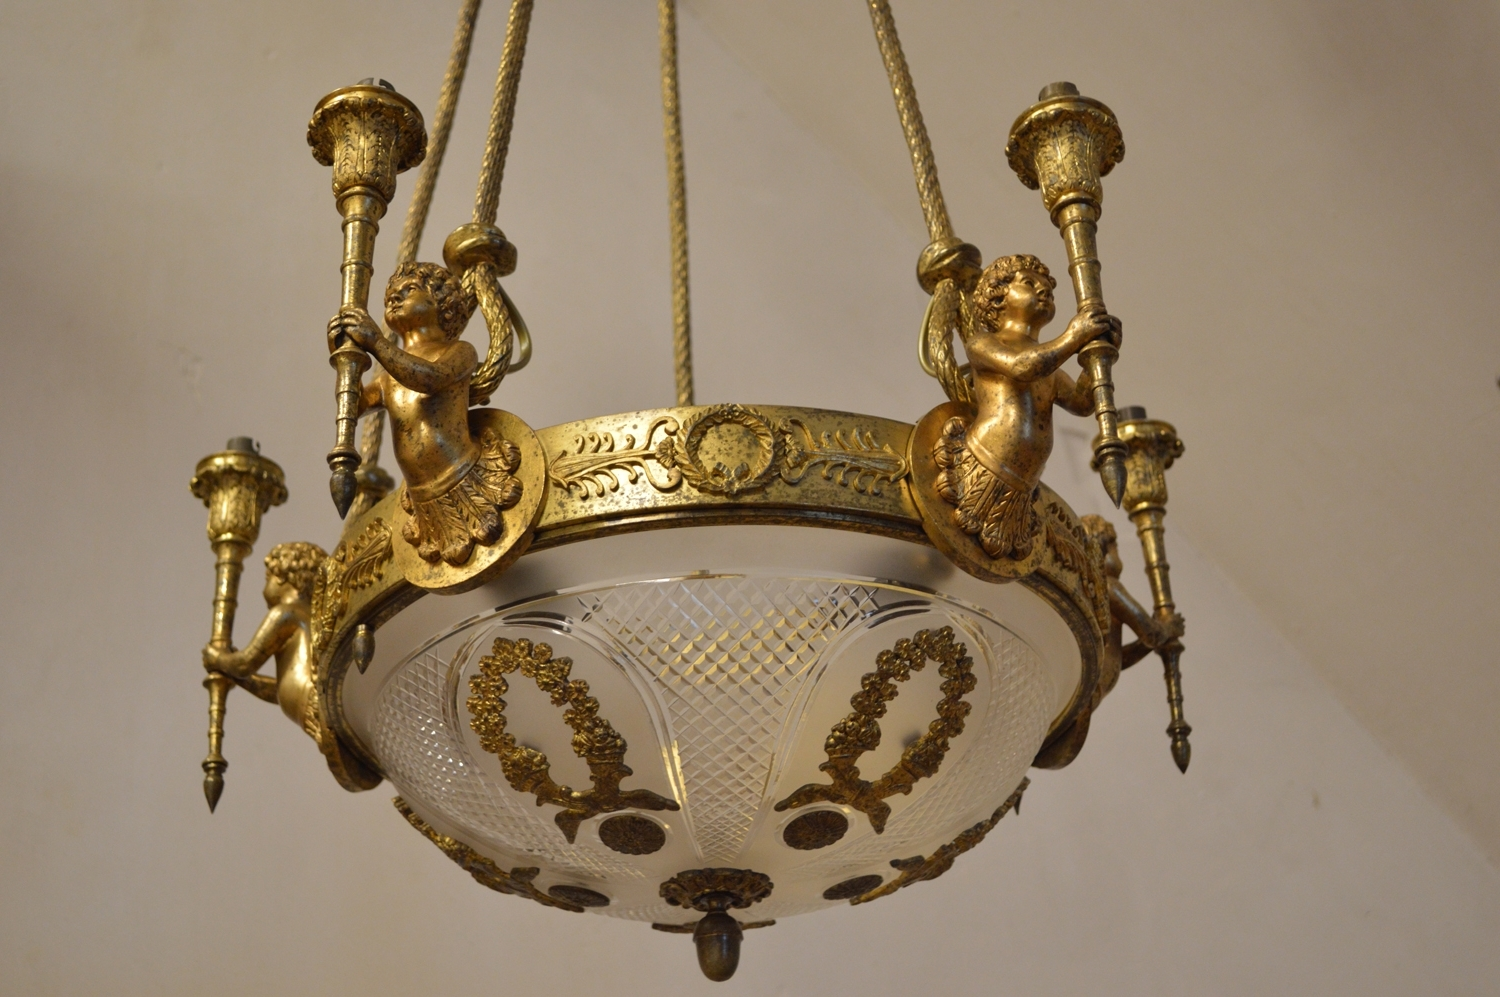 Antique Louis Xvi Style Chandelier With Cherubs In Gilt Bronze For With Most Popular Antique Looking Chandeliers (View 13 of 15)